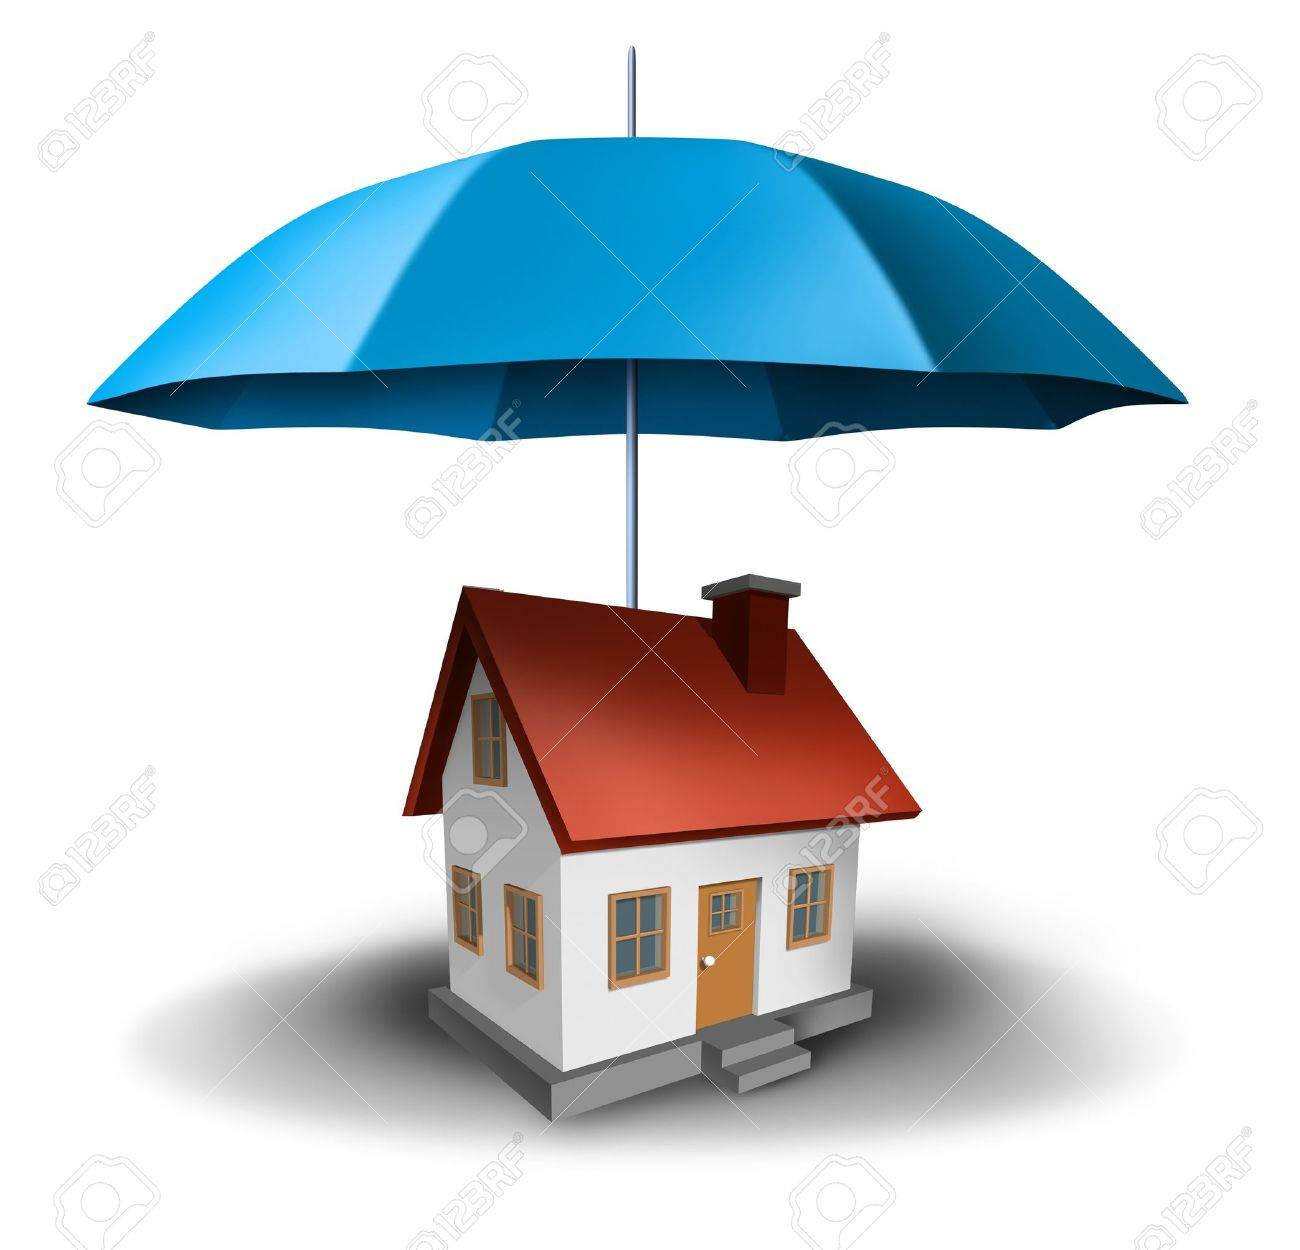 real estate safety with a house being protected with a secure blue umbrella as a symbol of residential security from mortgage payments or damage on a white background Stock Photo - 14119866